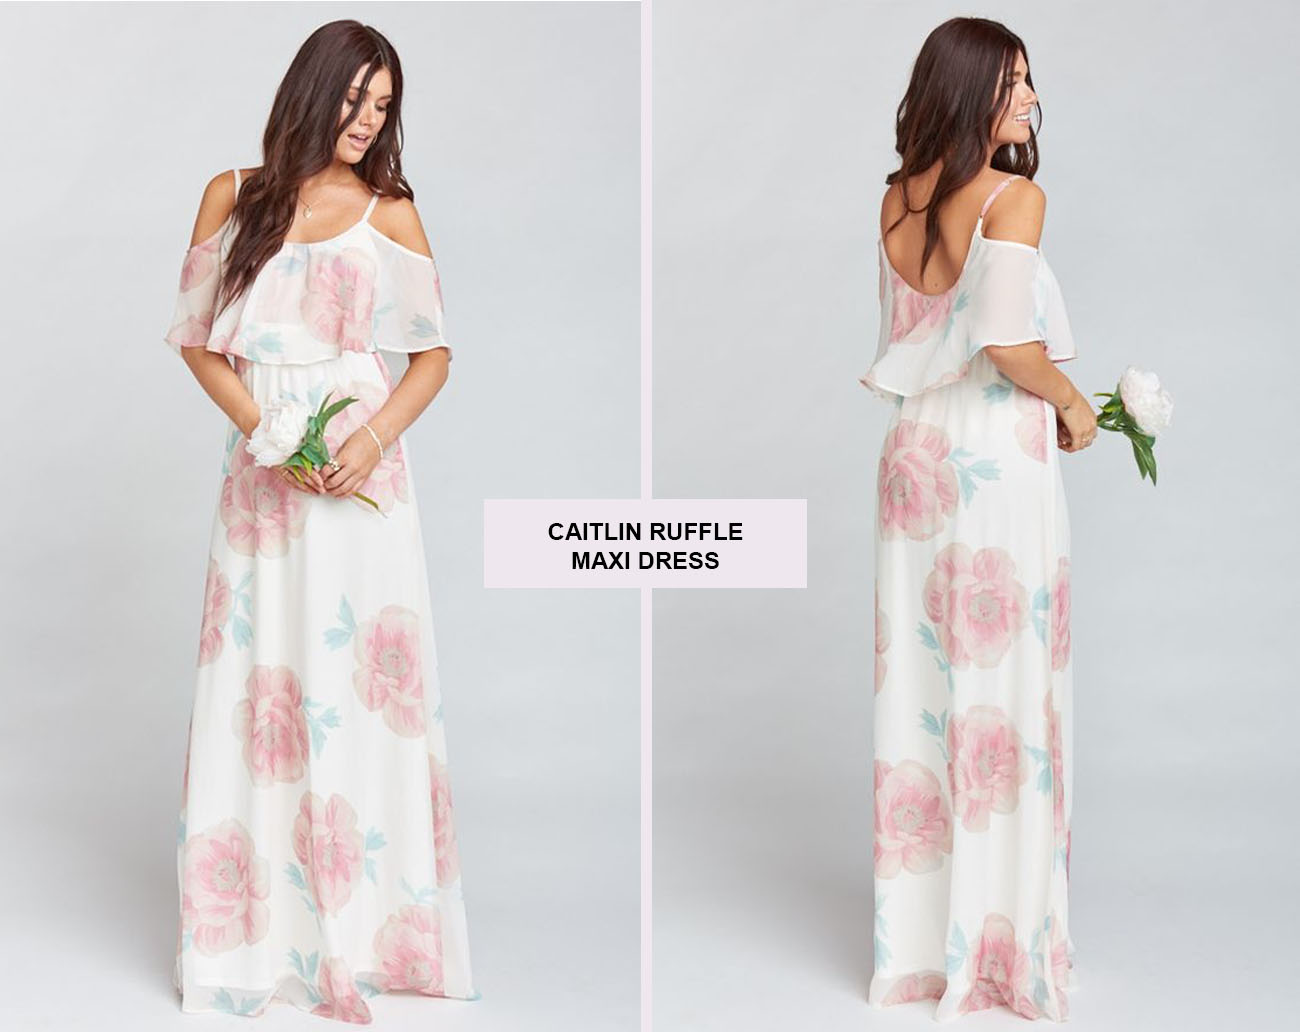 Caitlin Ruffle Maxi Dress in Wedding Bells Floral